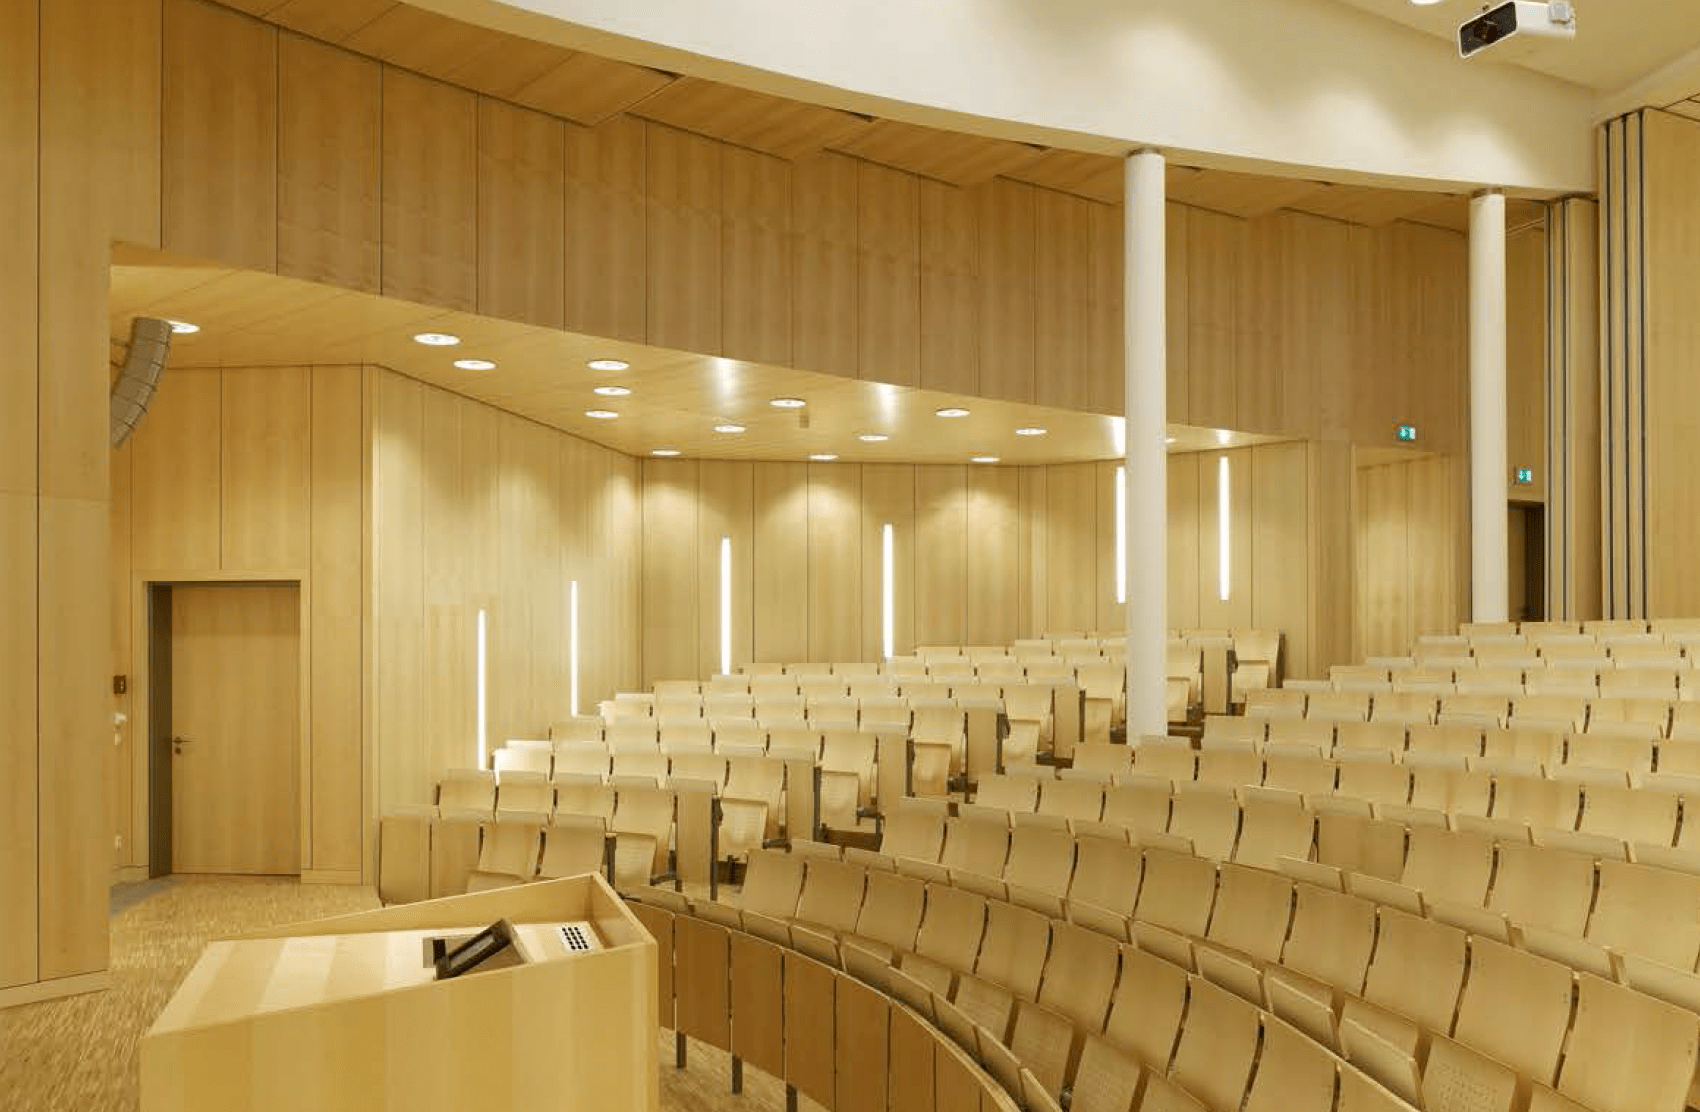 Akustik Design Ambienta Architectural Solutions Acoustical Panels